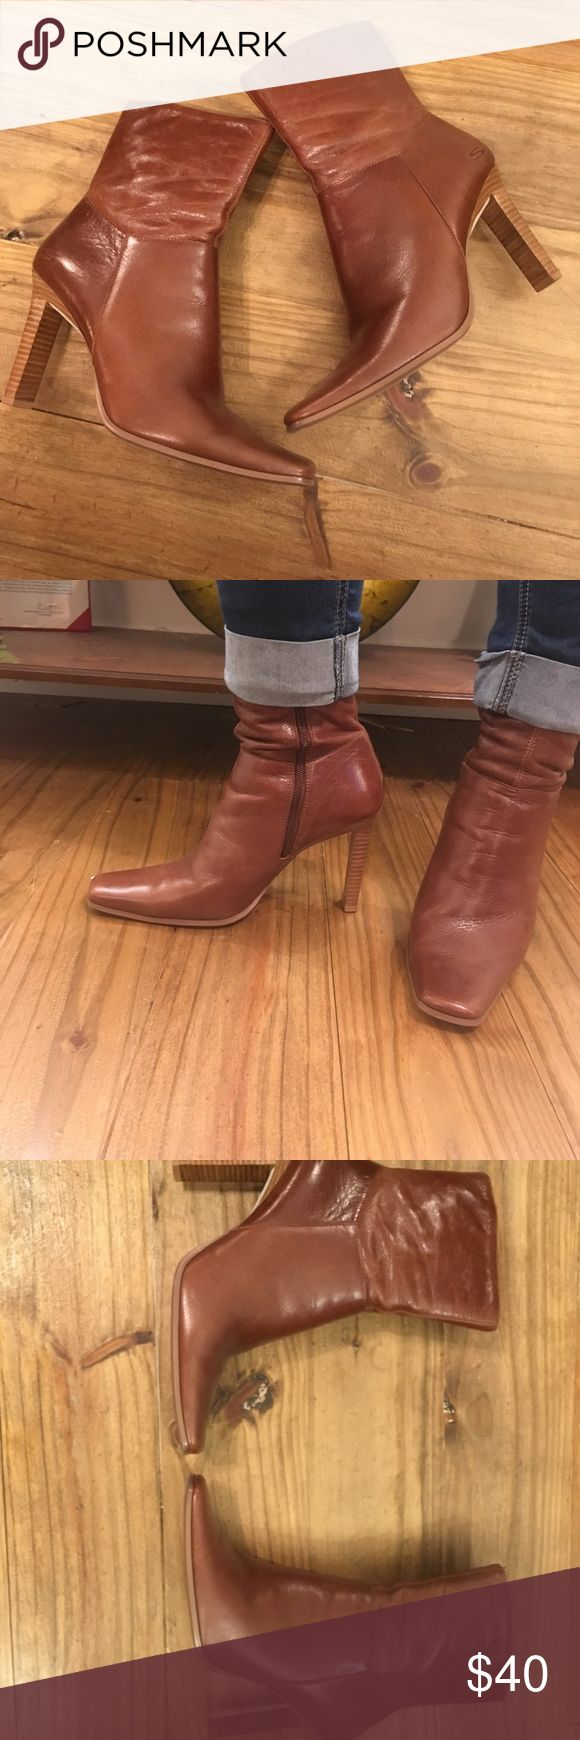 Skechers brown leather ankle booties size 9 Super cute ankle booties. I love these with cuffed skinny jeans but I never get a chance to wear these boots. They need a good home with a sassy girl who will rock them like they deserve! Skechers Shoes Ankle Boots & Booties